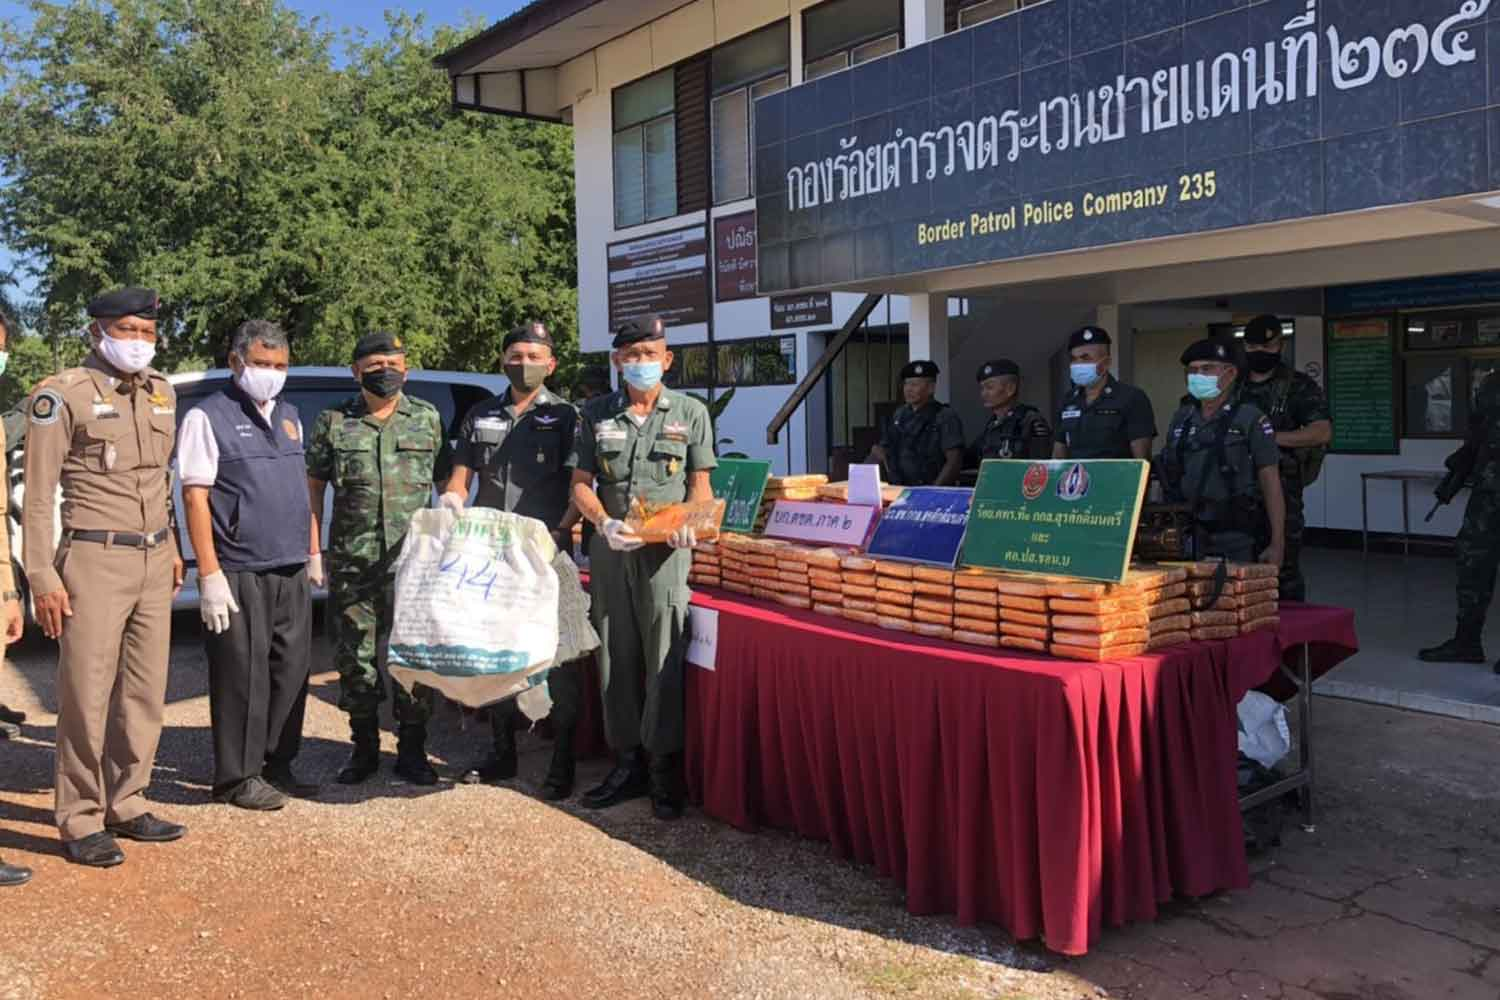 Slabs of dried marijuana are put on display for a press briefing at Border Patrol Police Company 235 in Nakhon Phanom province. The drugs were seized on Saturday night. (Photo by Pattanapong Sripiachai)